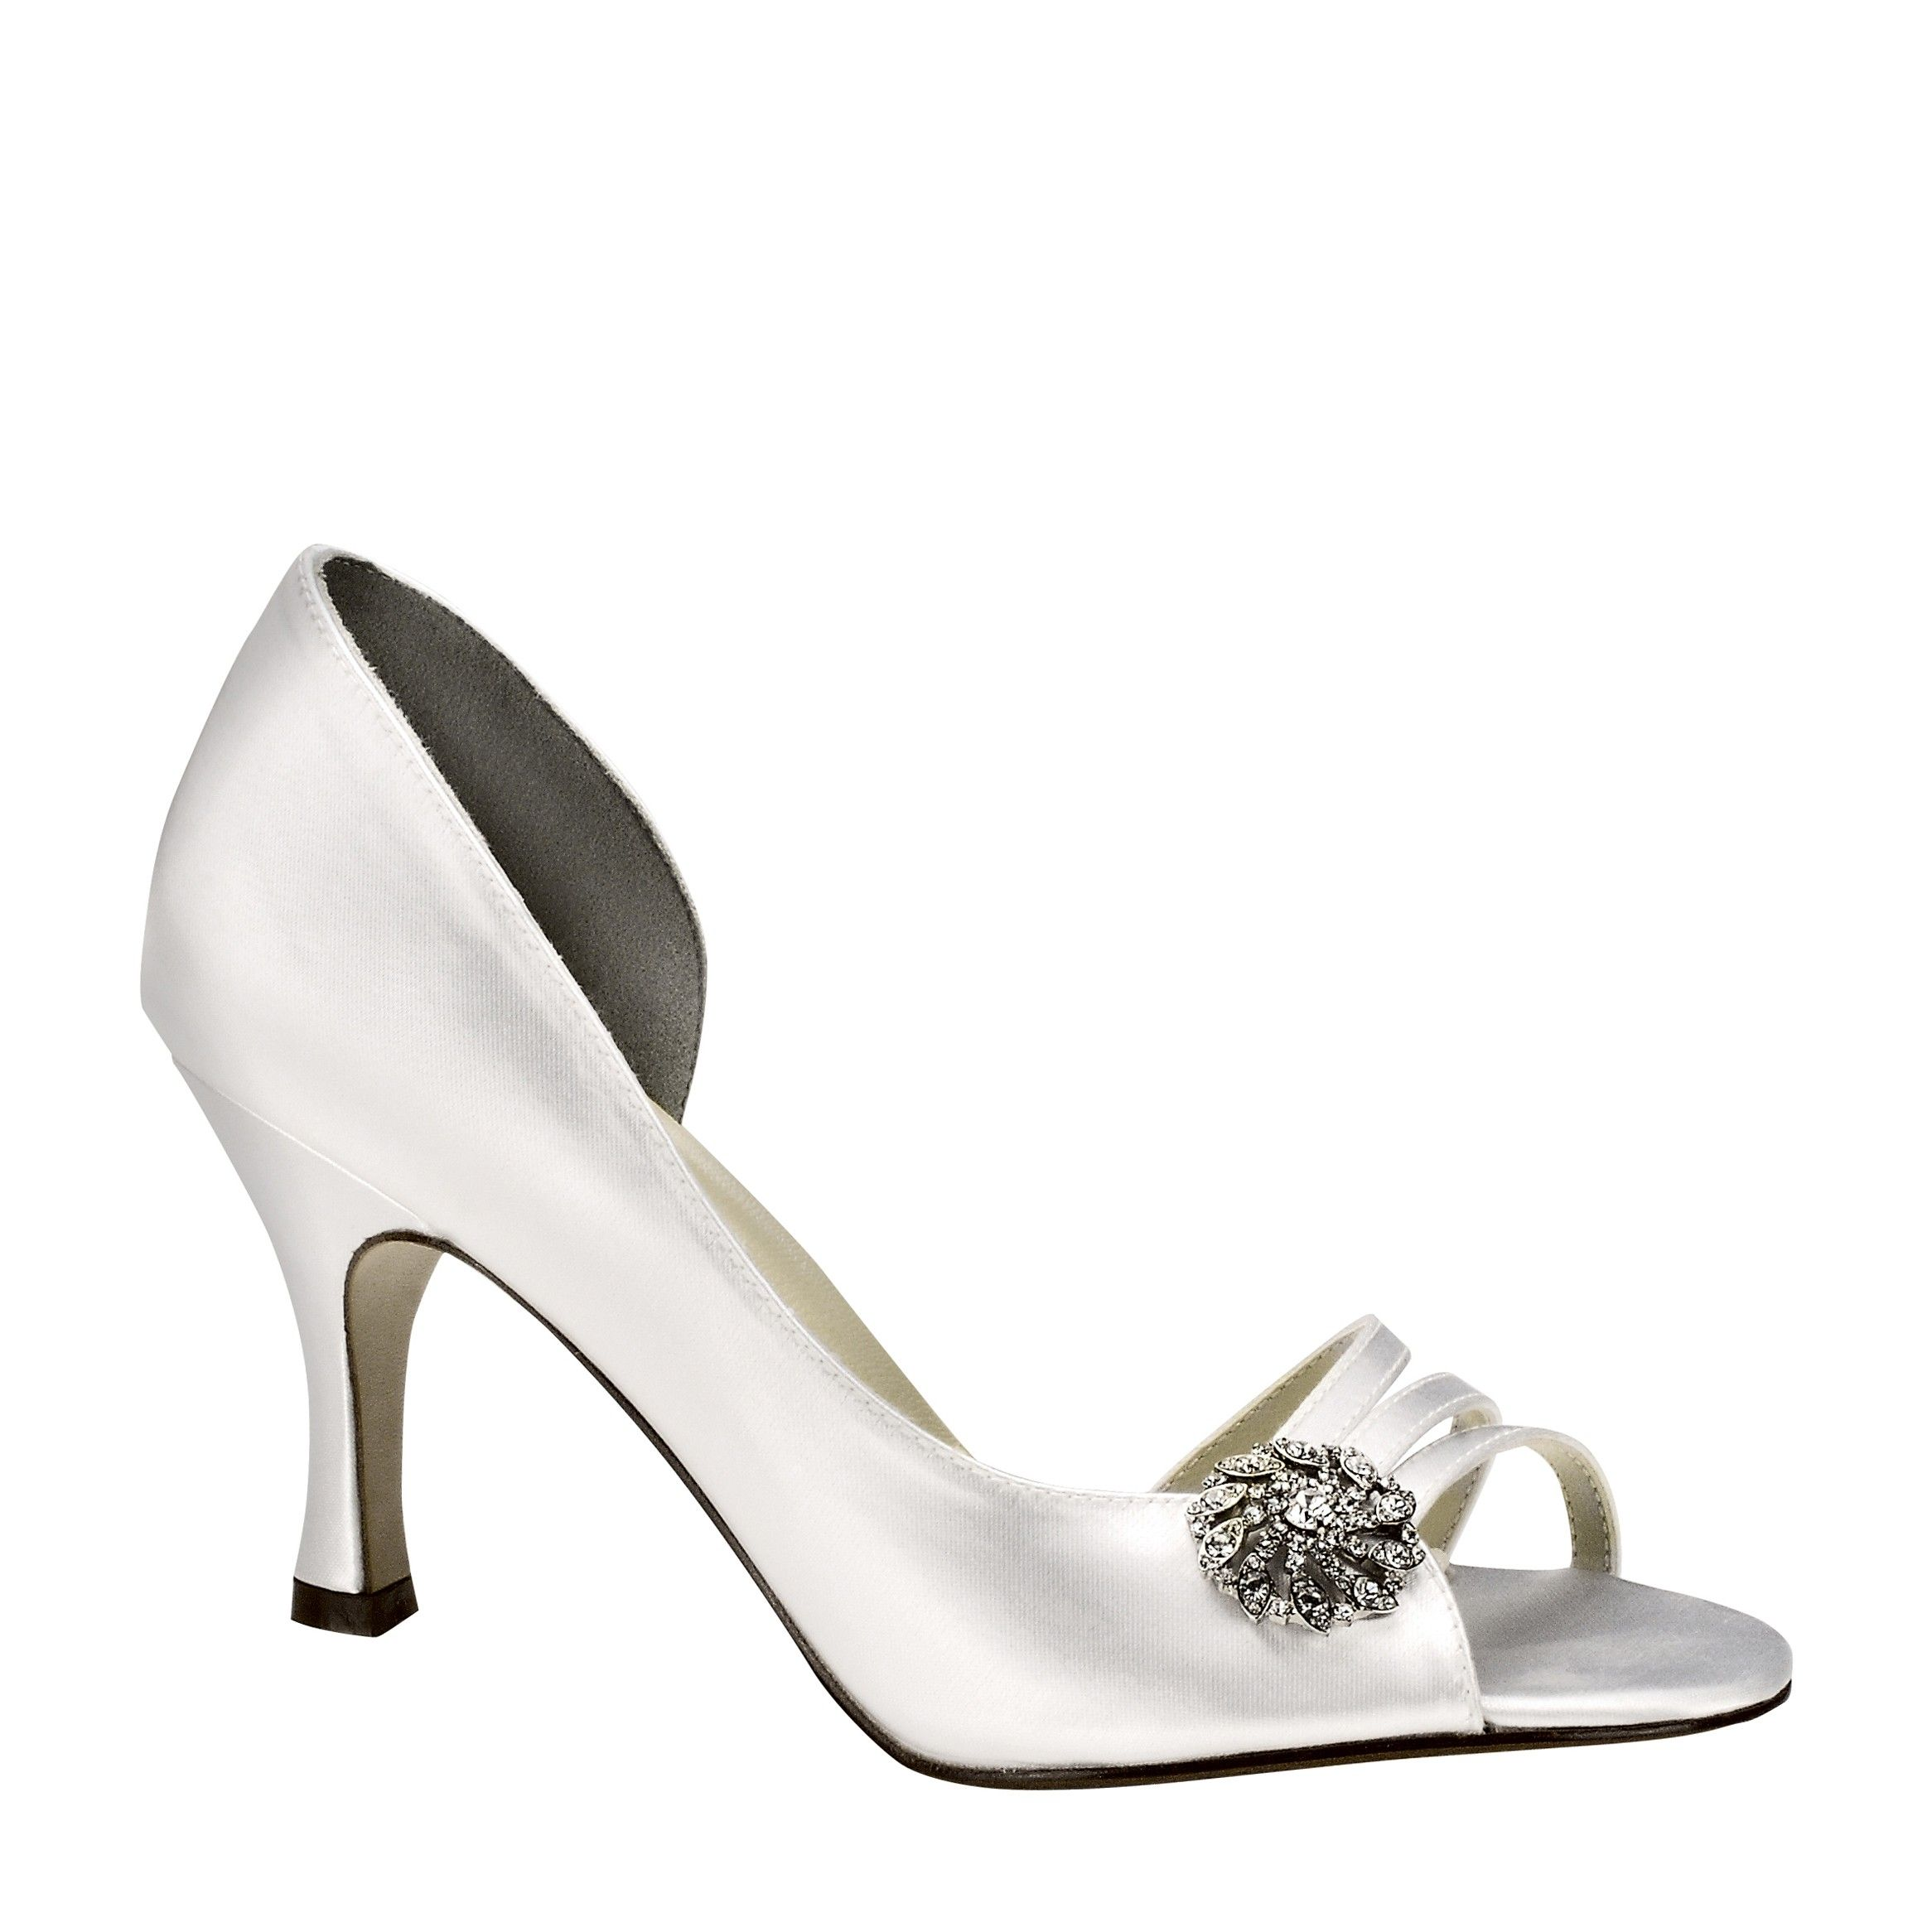 Sharmain In Dyeable White Bridal Shoes Mother Of The Bride Shoes White Bridal Shoes